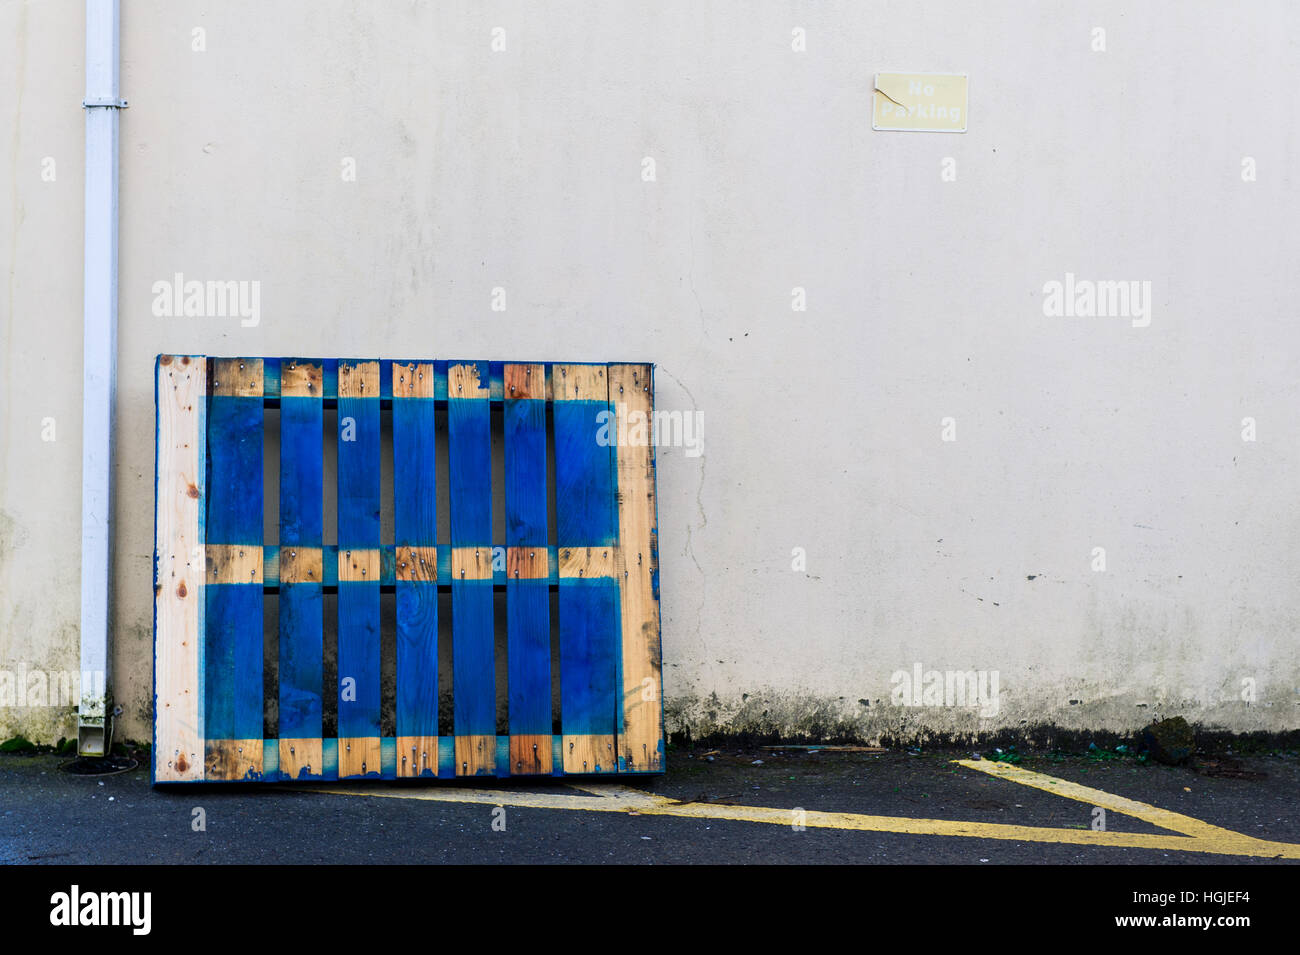 Blue wooden pallet leaning against a white concrete wall with copy space. - Stock Image